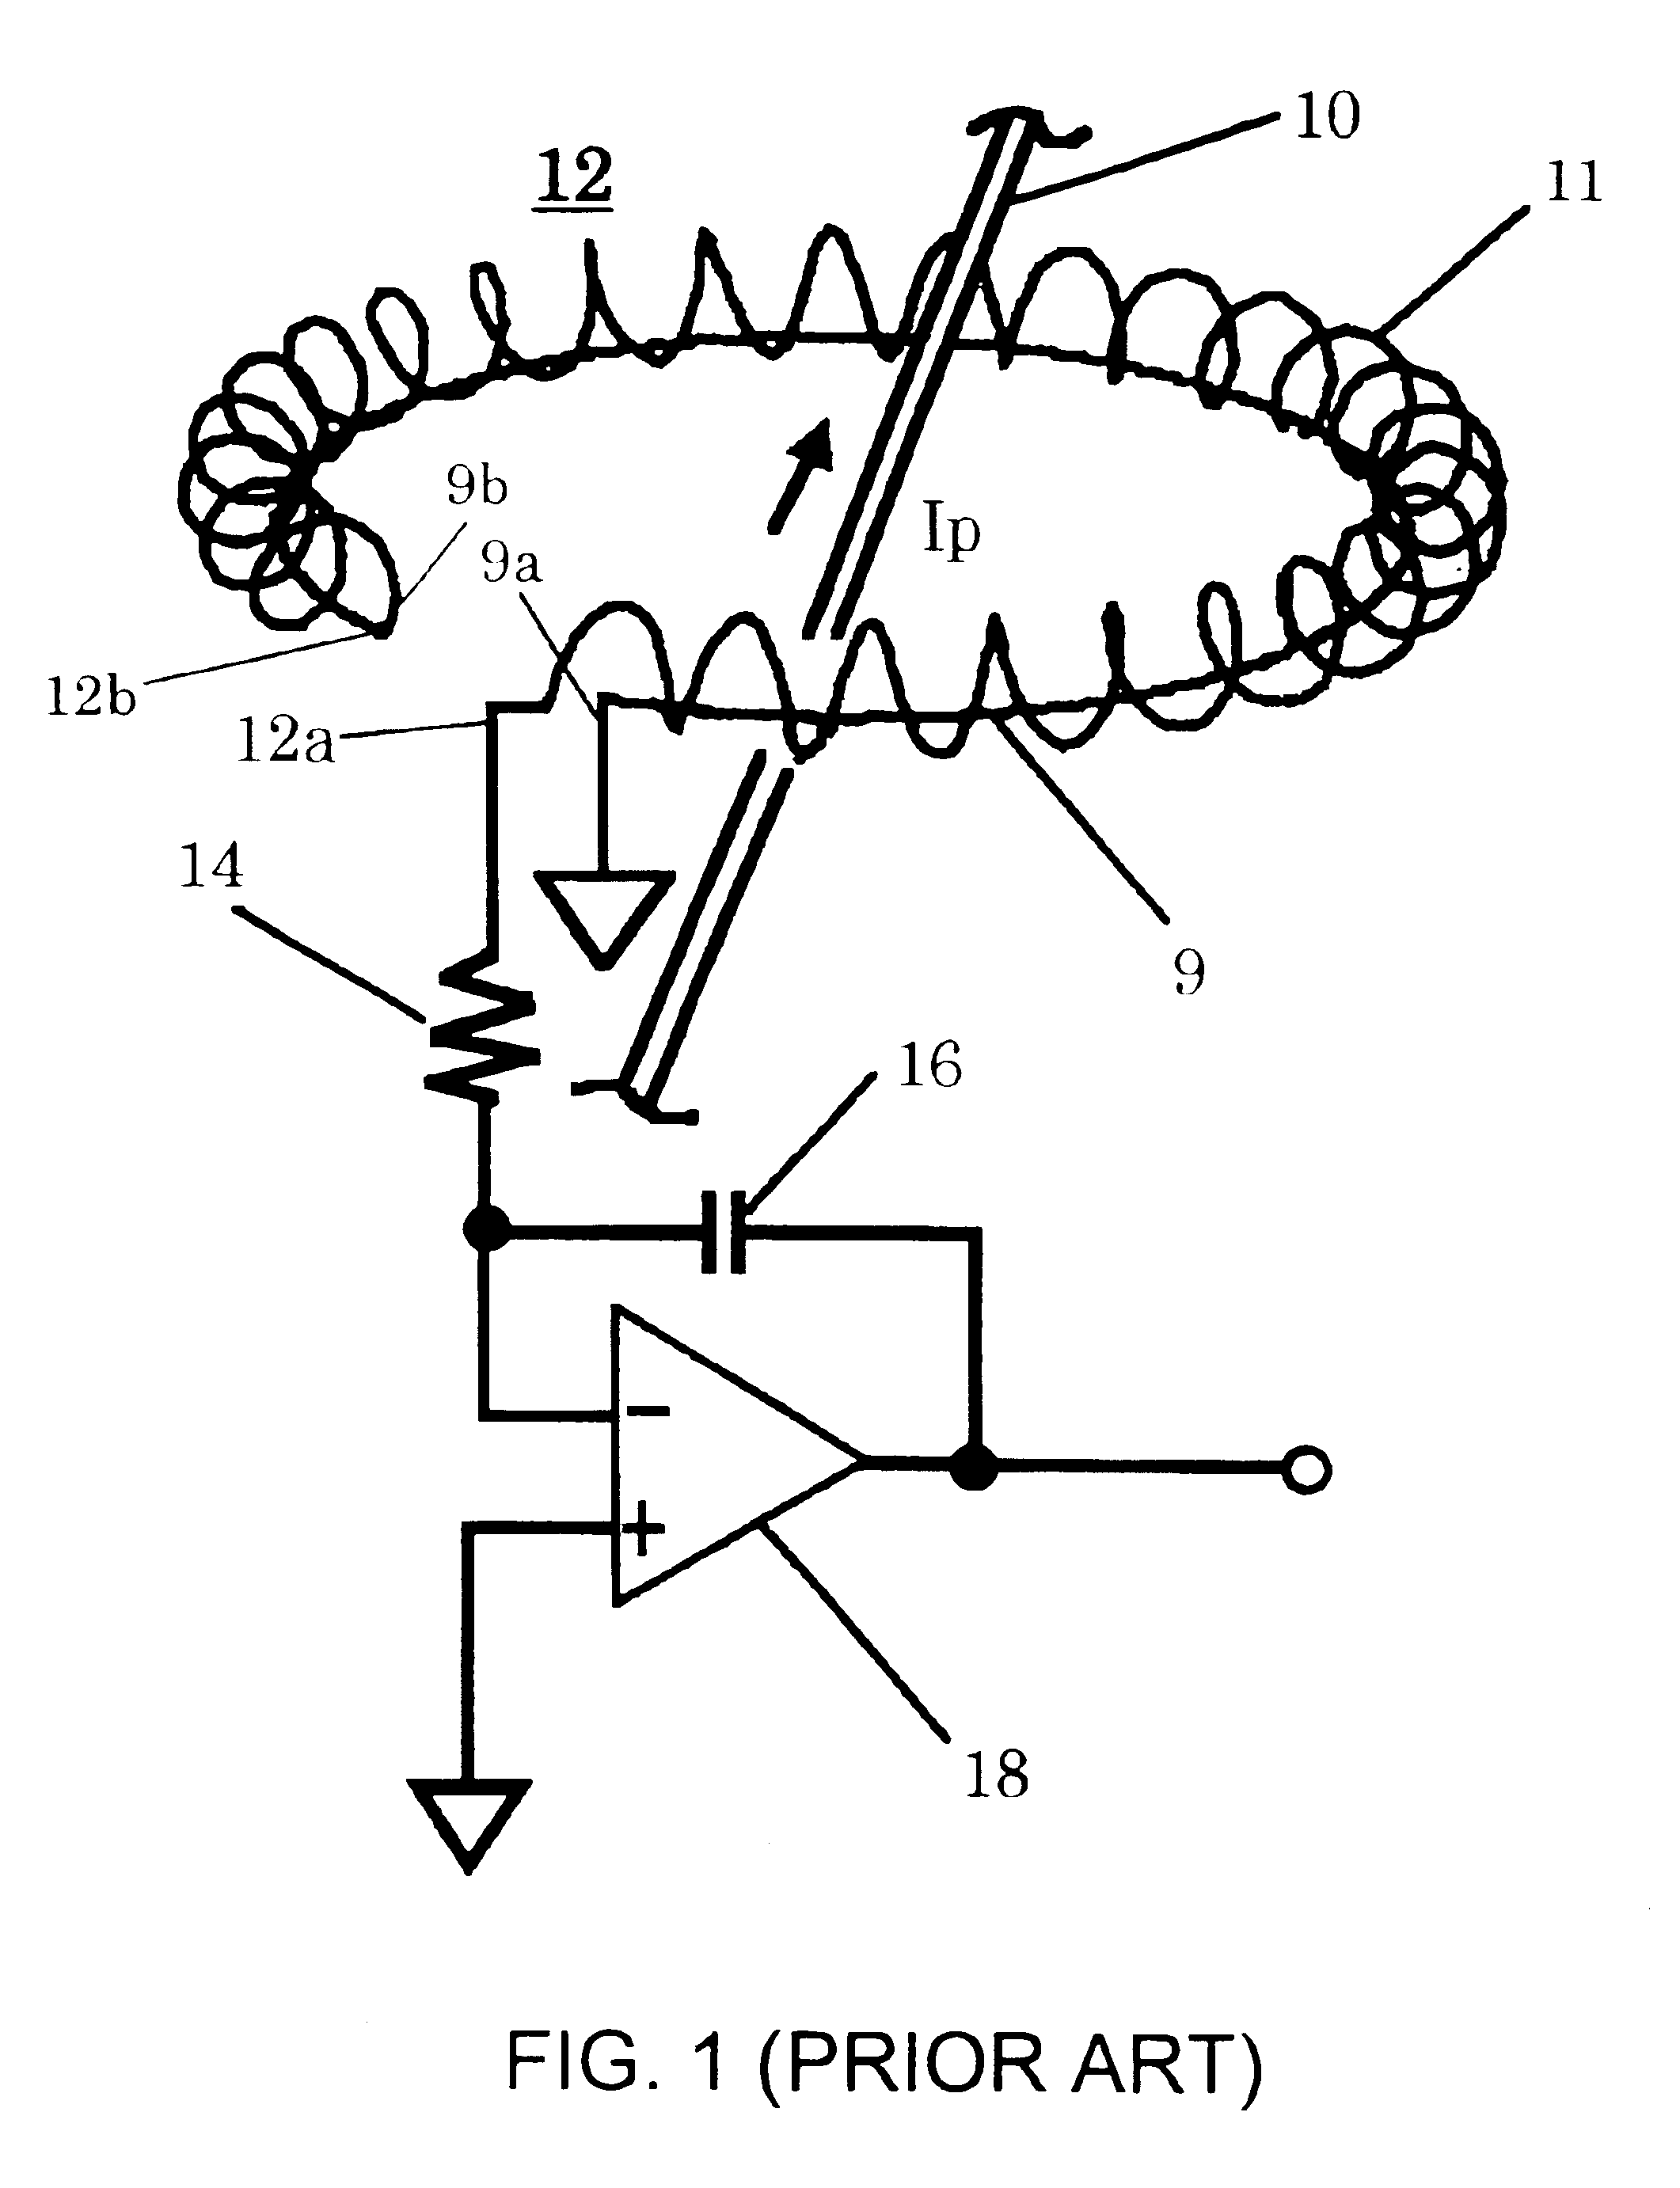 Current Probes In Line : Patent us current probe google patents